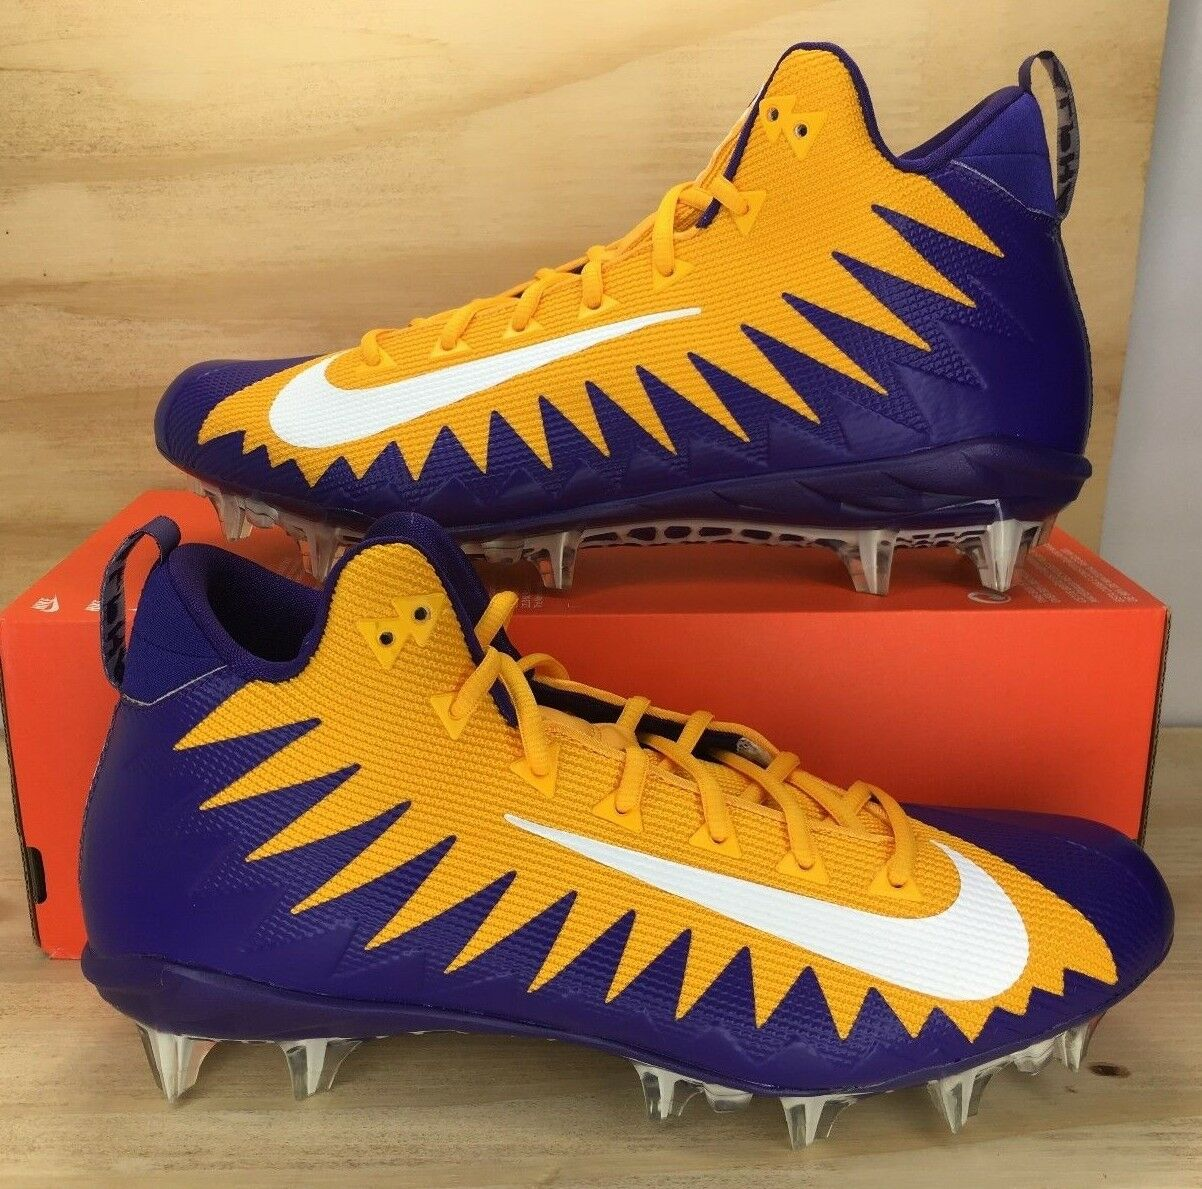 Cheap and beautiful fashion Nike Alpha Menace Pro Football Cleats LSU LA Tigers Purple Gold 884527-715 Price reduction